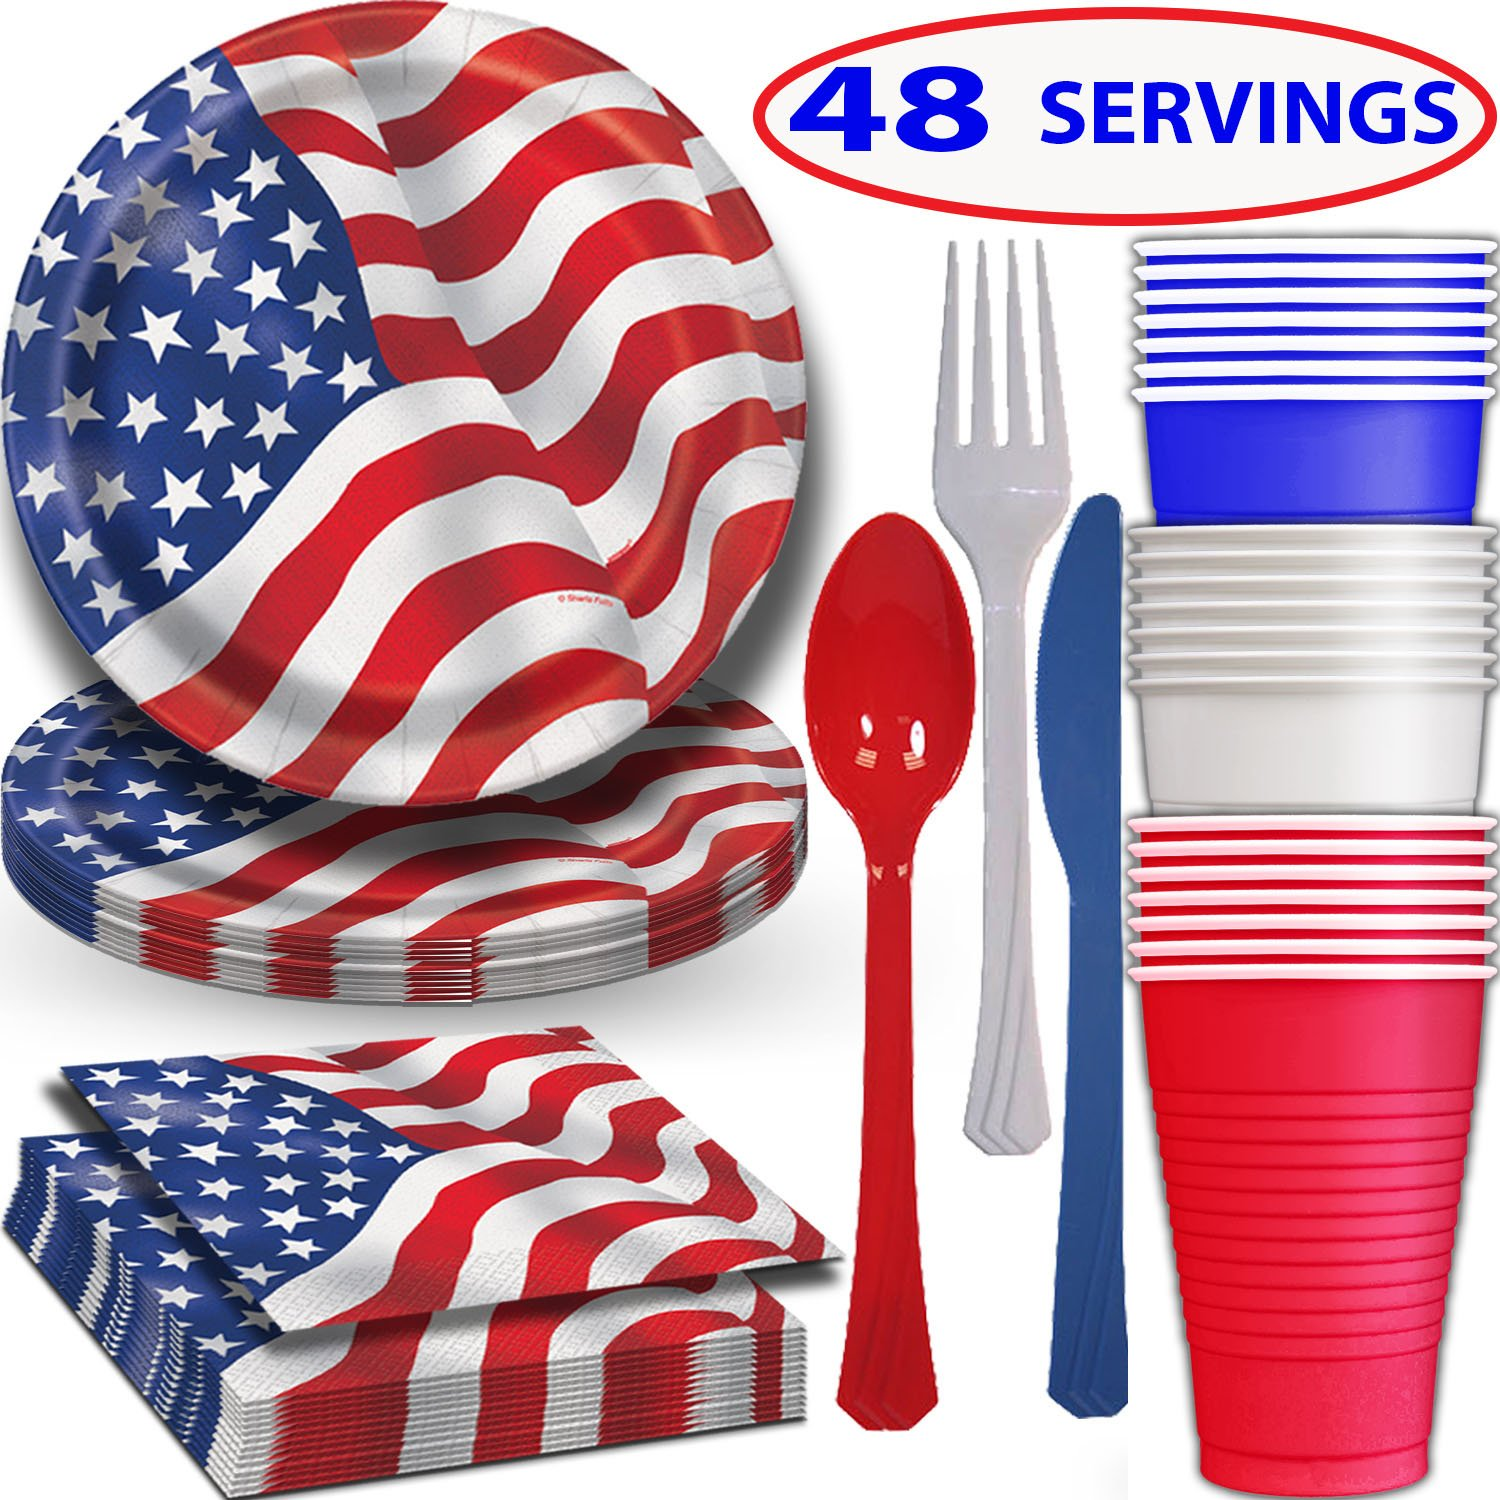 American Flag Tableware 48 Servings. Plates + Cups + Napkins + Cutlery. Patriotic Party Supplies Decorated in Red White and Blue Stars and Stripes for July Fourth, Memorial day, and more